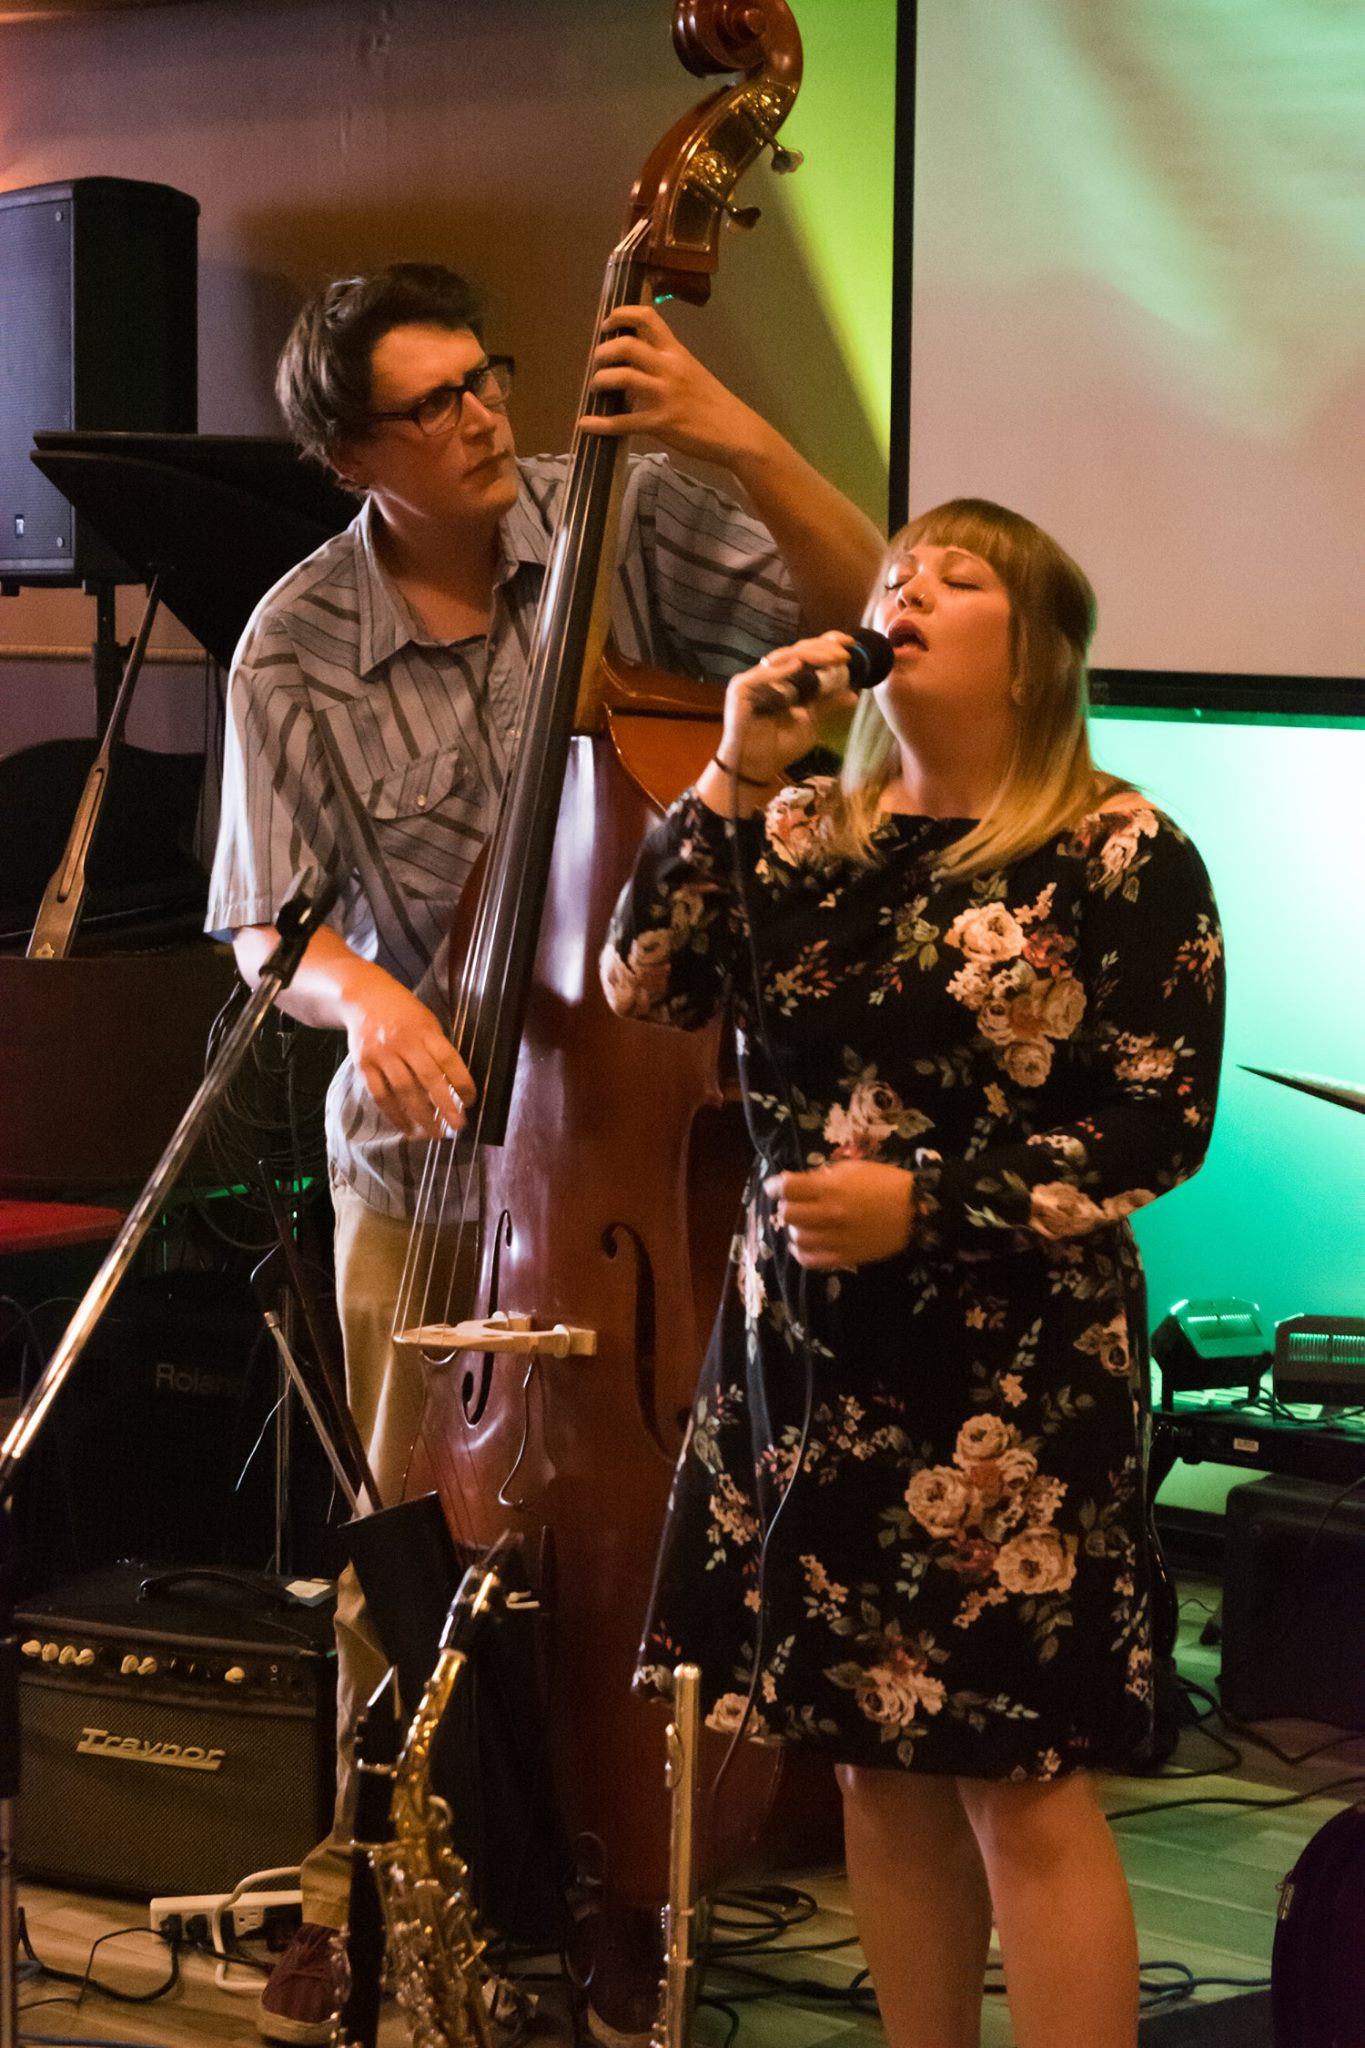 Andrew Furlong and Laura Swankey at Sudbury Jazz Festival. September 2016.